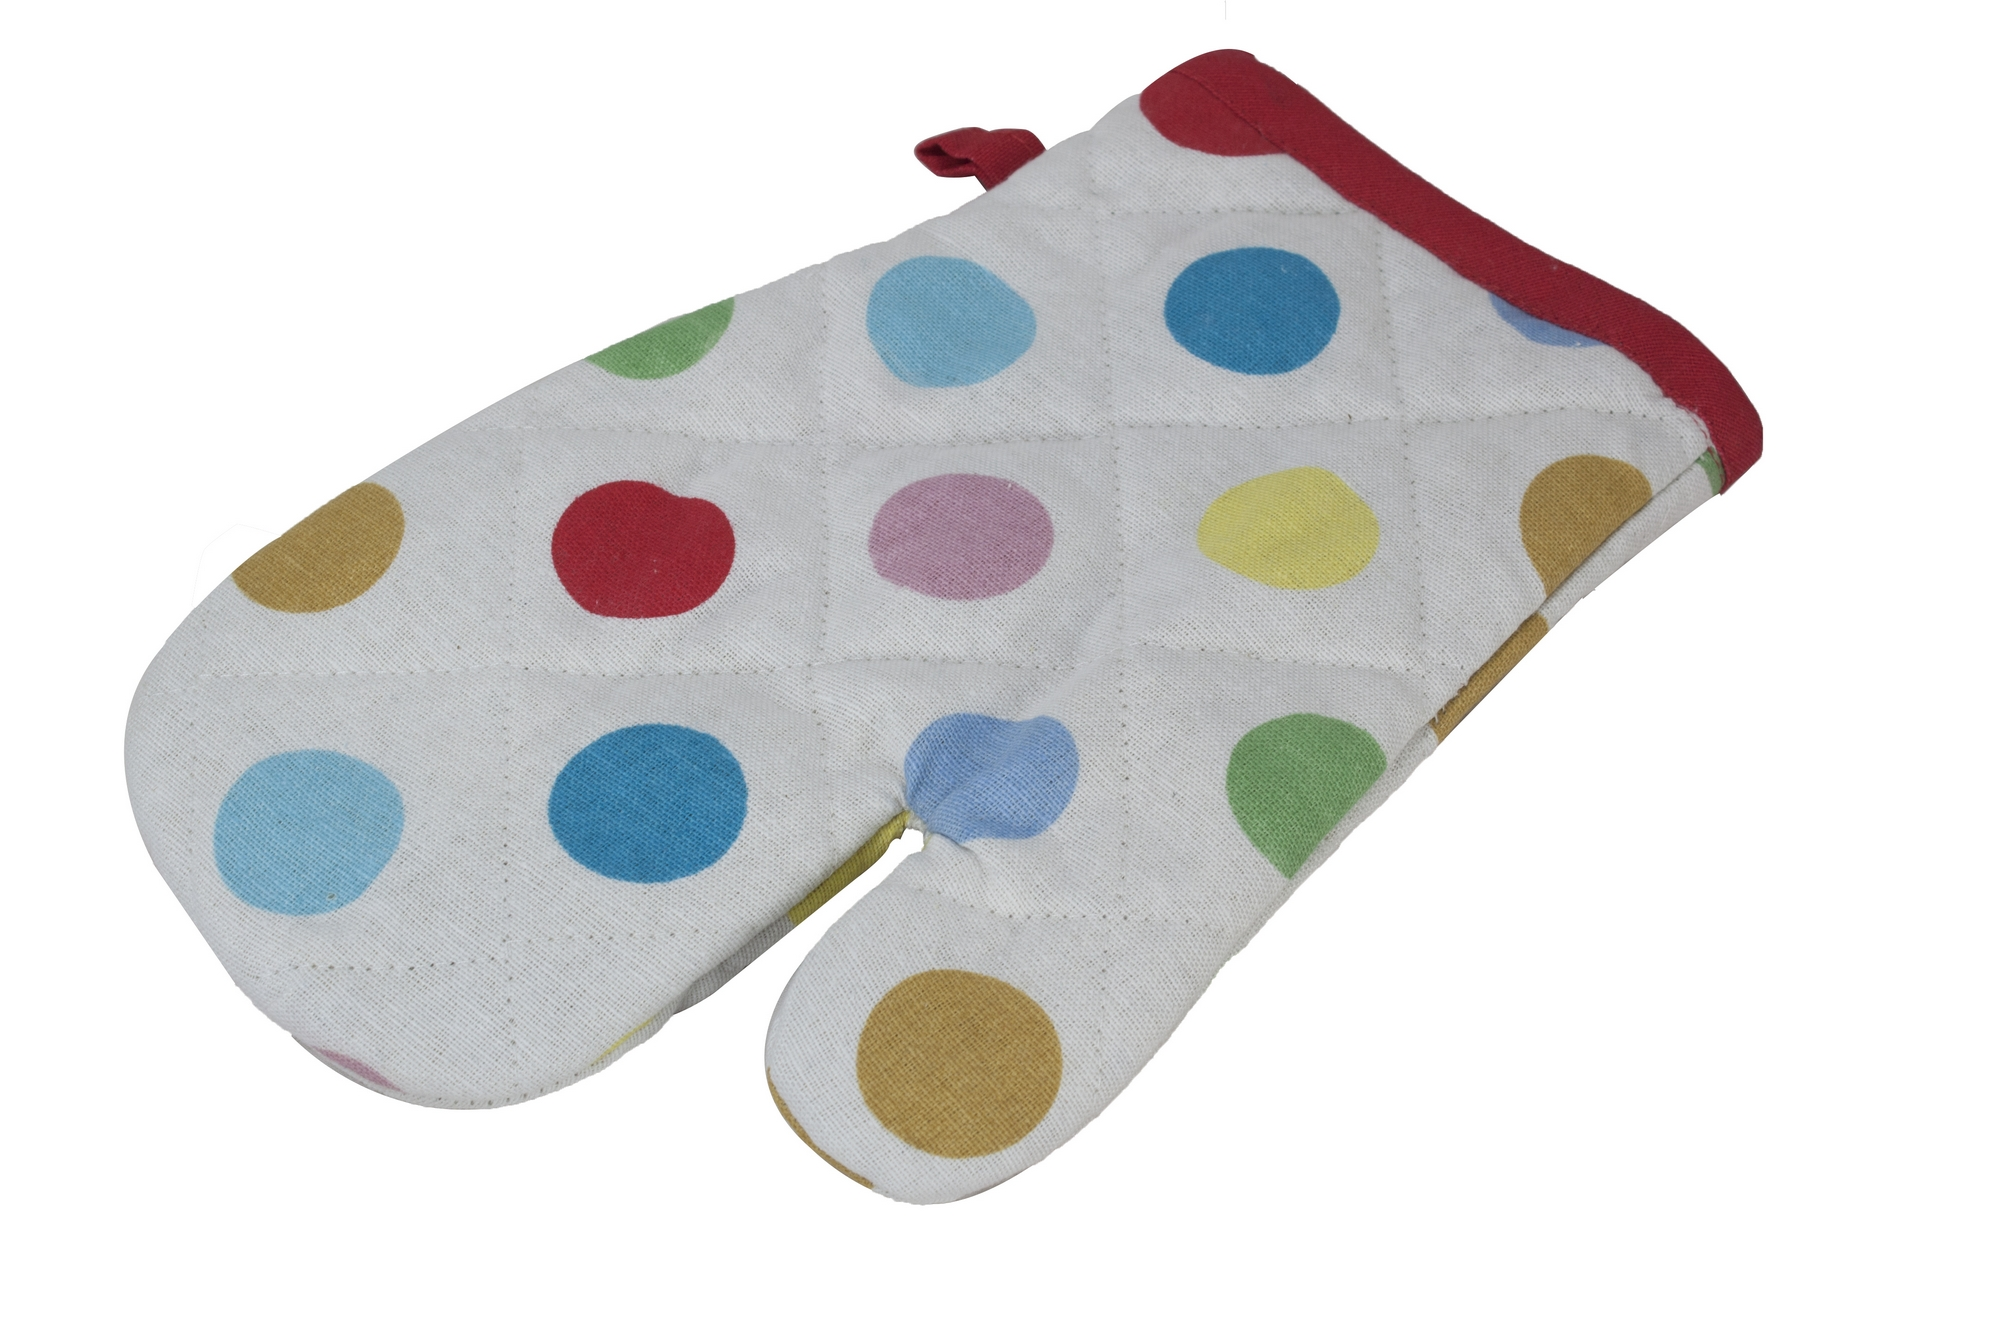 Spotty polka dot oven mitt